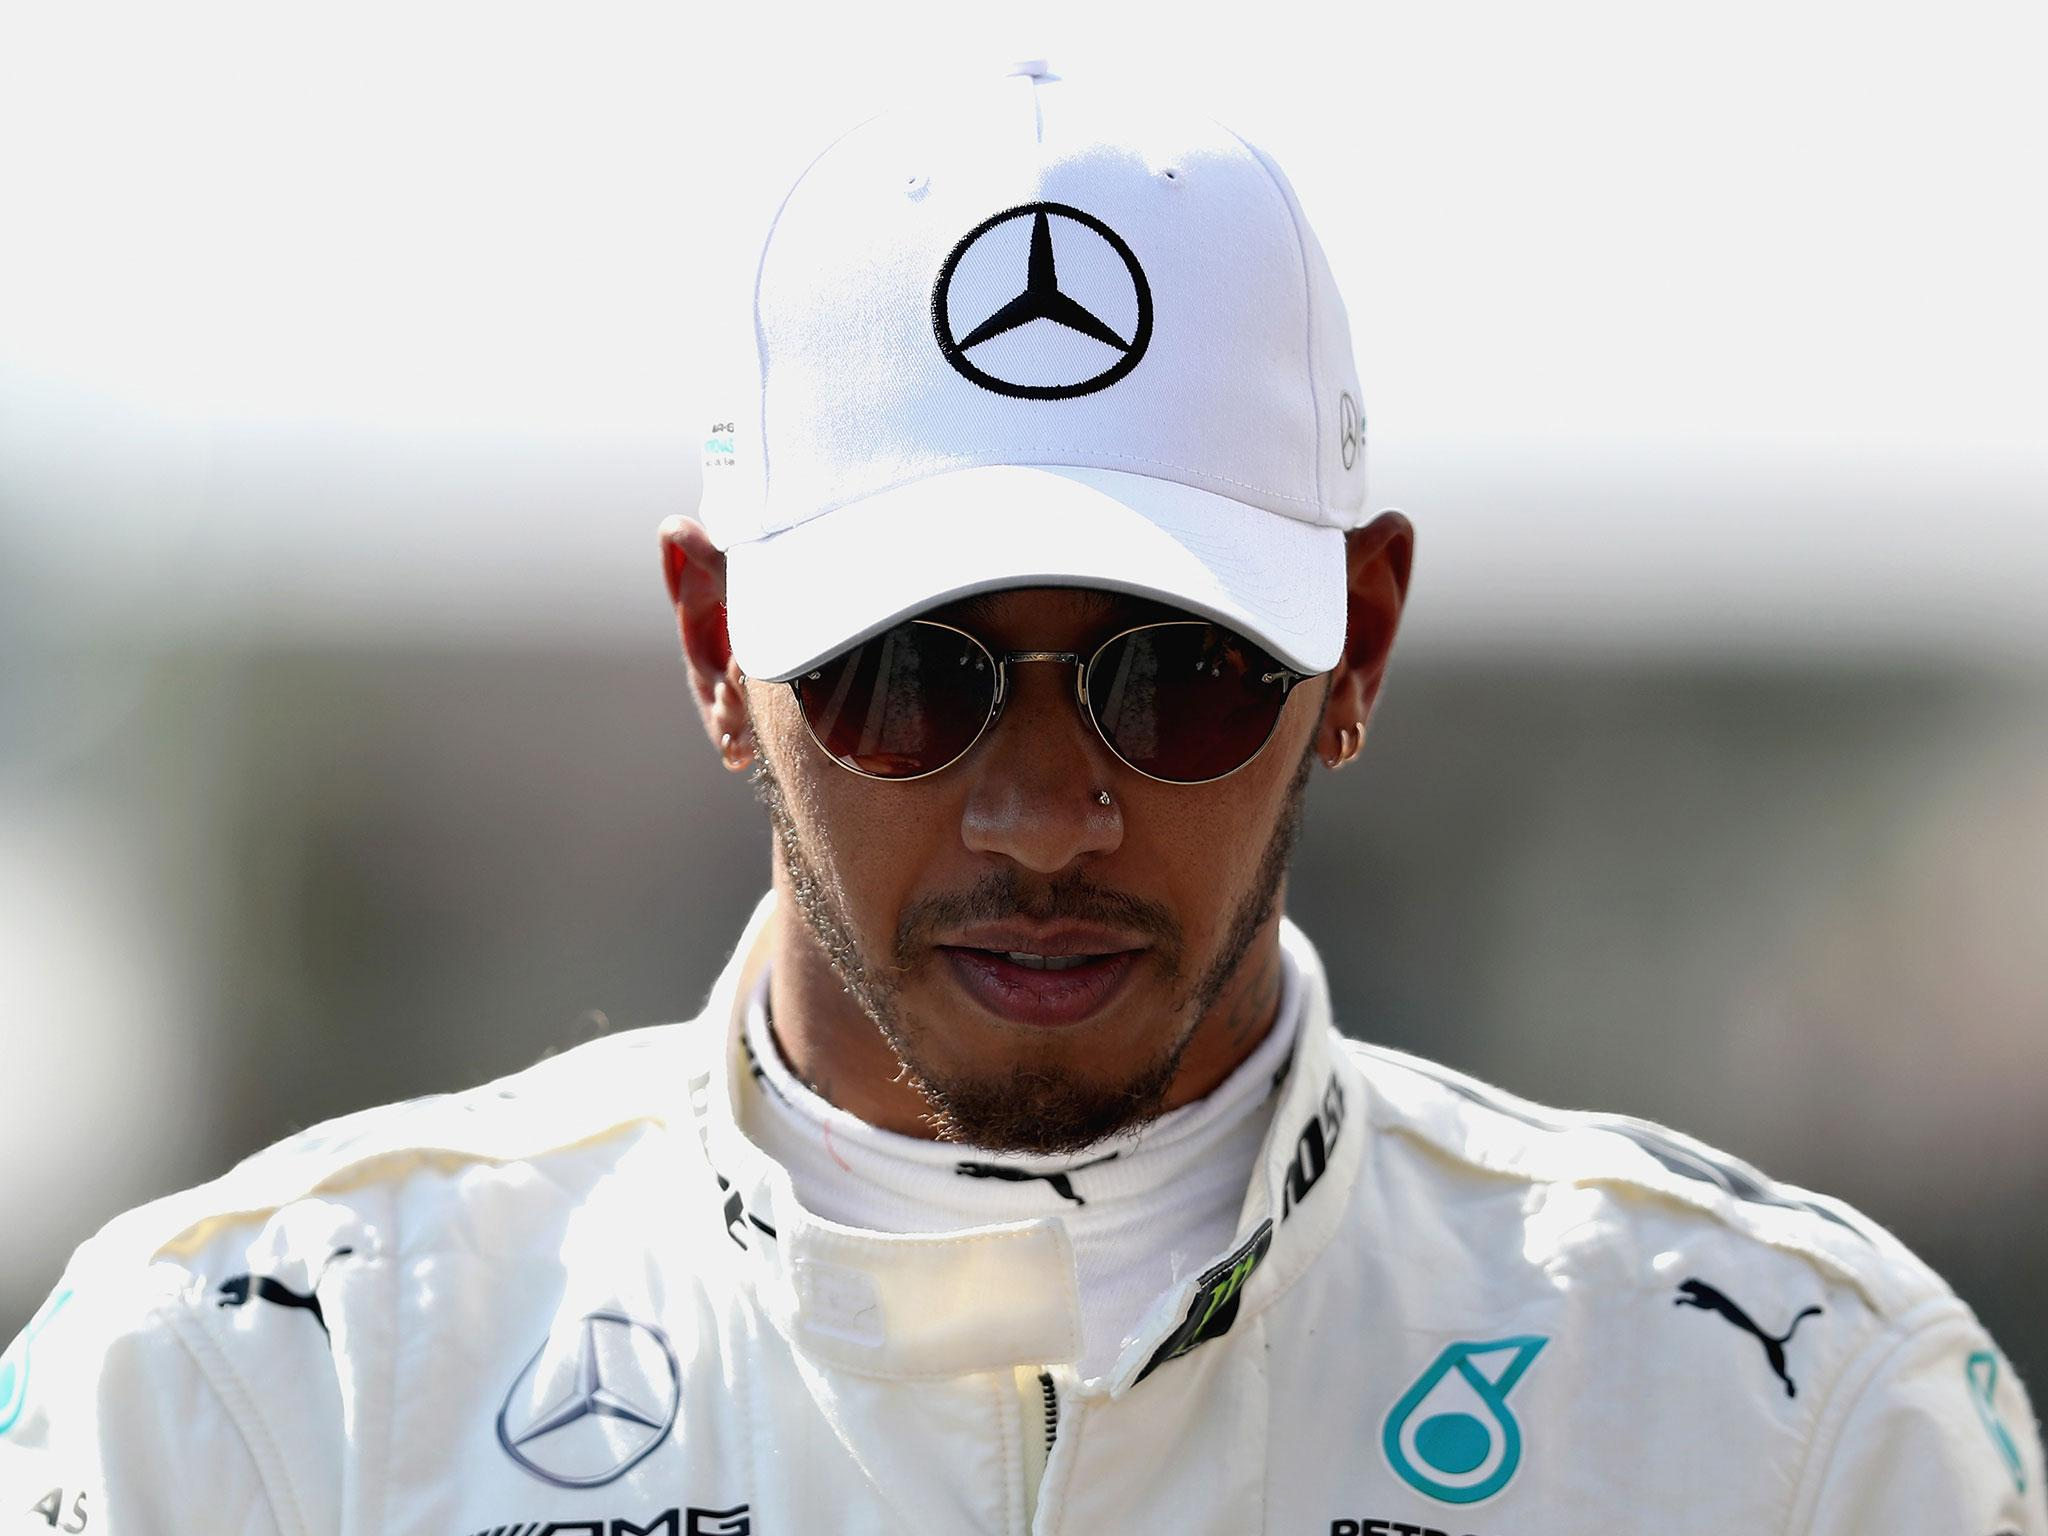 Lewis Hamilton finds himself with fight on his hands in championship tilt in Mexico